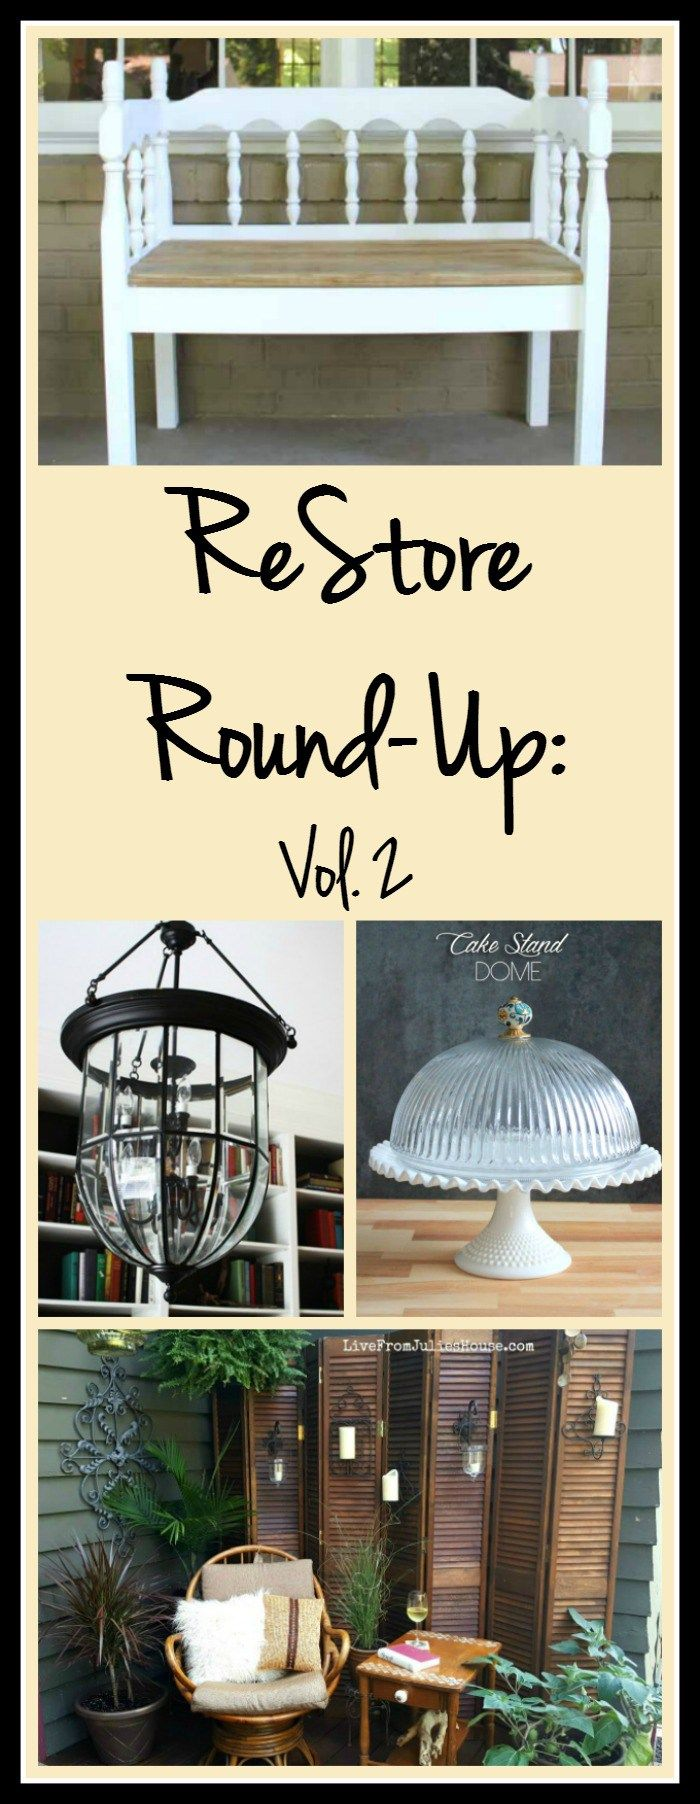 ReStore Round-Up: Vol. 2 - volume 2 of the ReStore Round-Up is here! This time around I'm featuring 20+ awesome upcycle ideas for your next ReStore treasure.